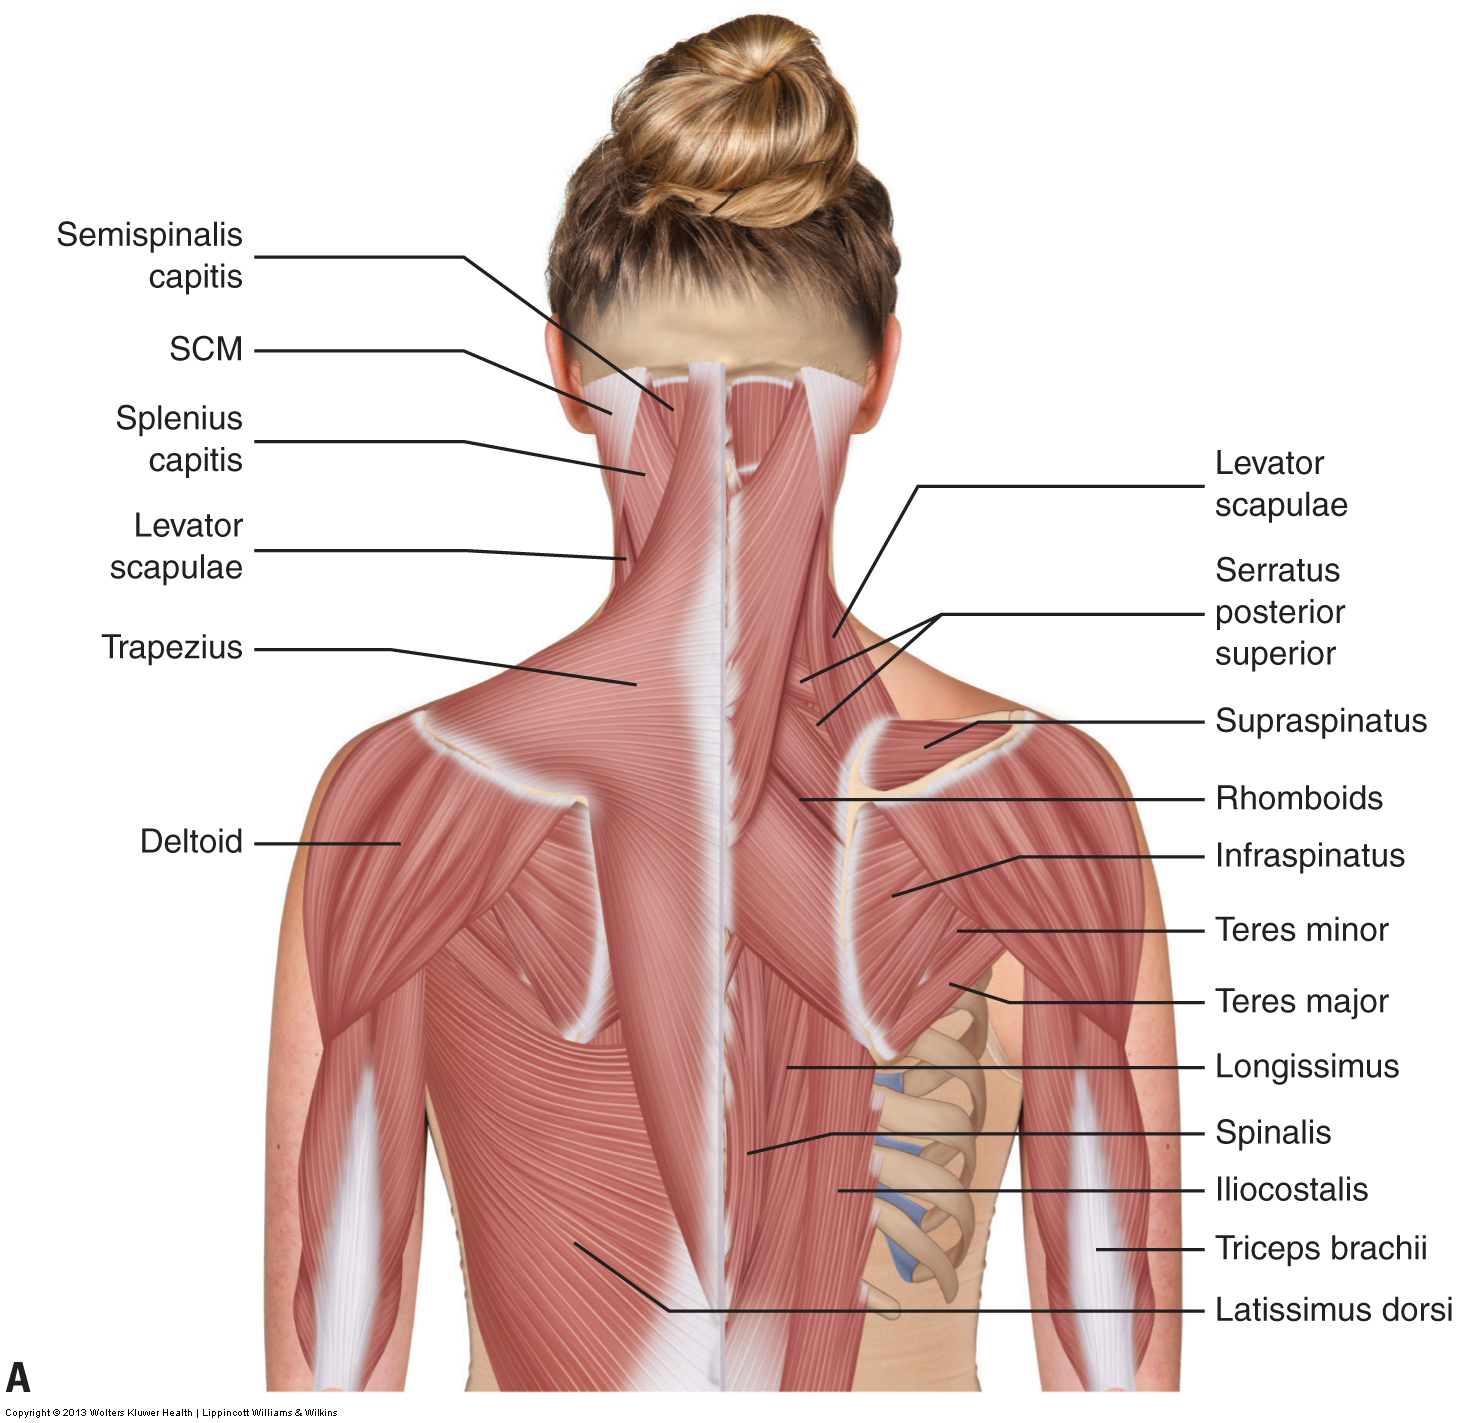 Muscles of the neck / musculature of the cervical spine